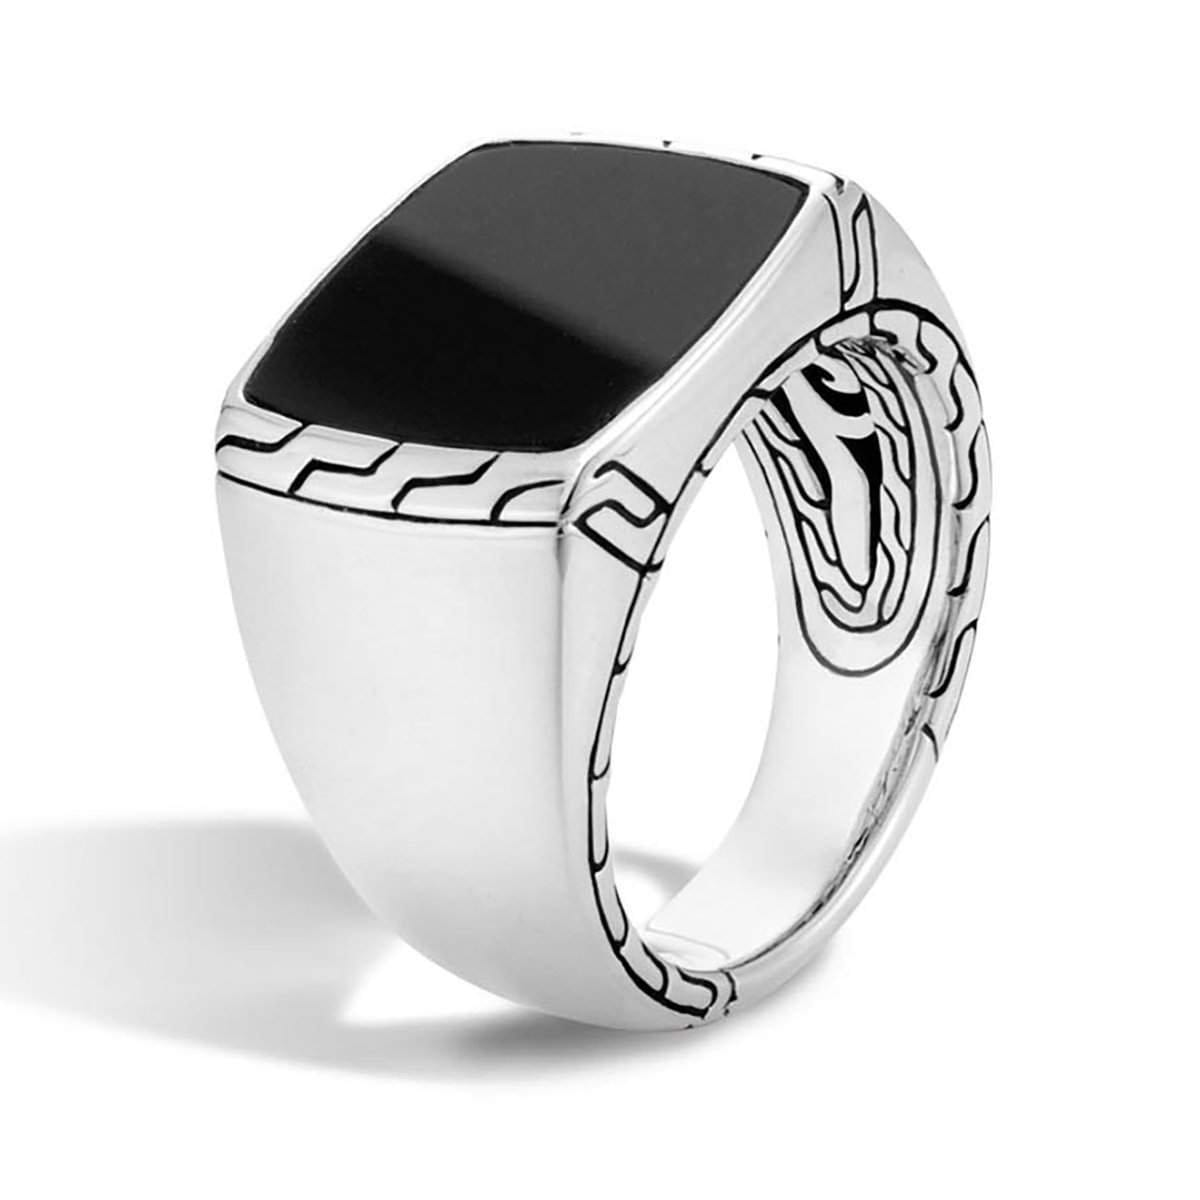 Classic Chain Men's Silver Signet Black Jade Ring - RBS996691BJ-John Hardy-Renee Taylor Gallery